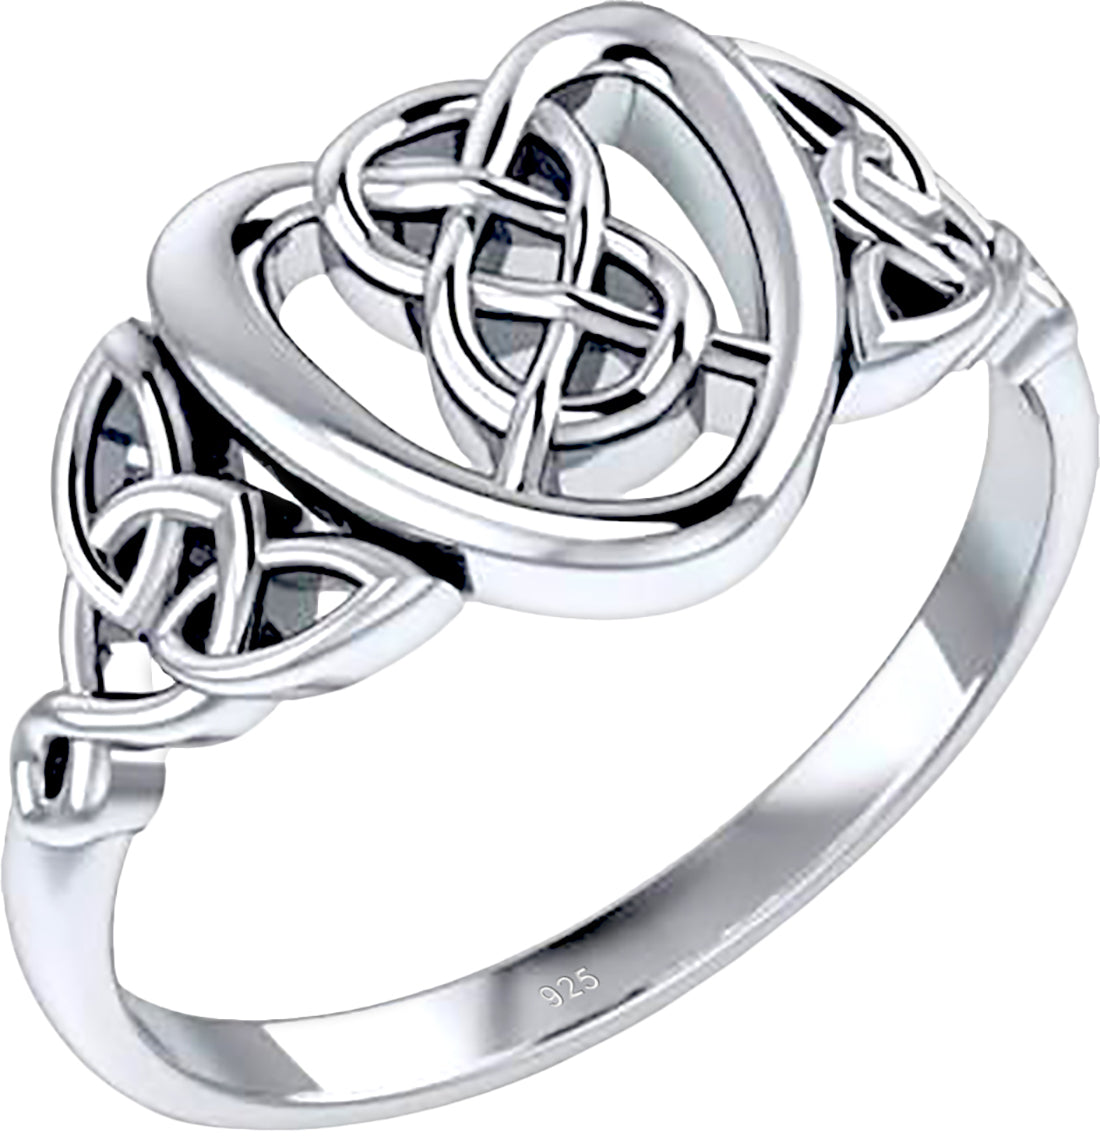 0.925 Sterling Silver Irish Celtic Love Knot & Heart Ring